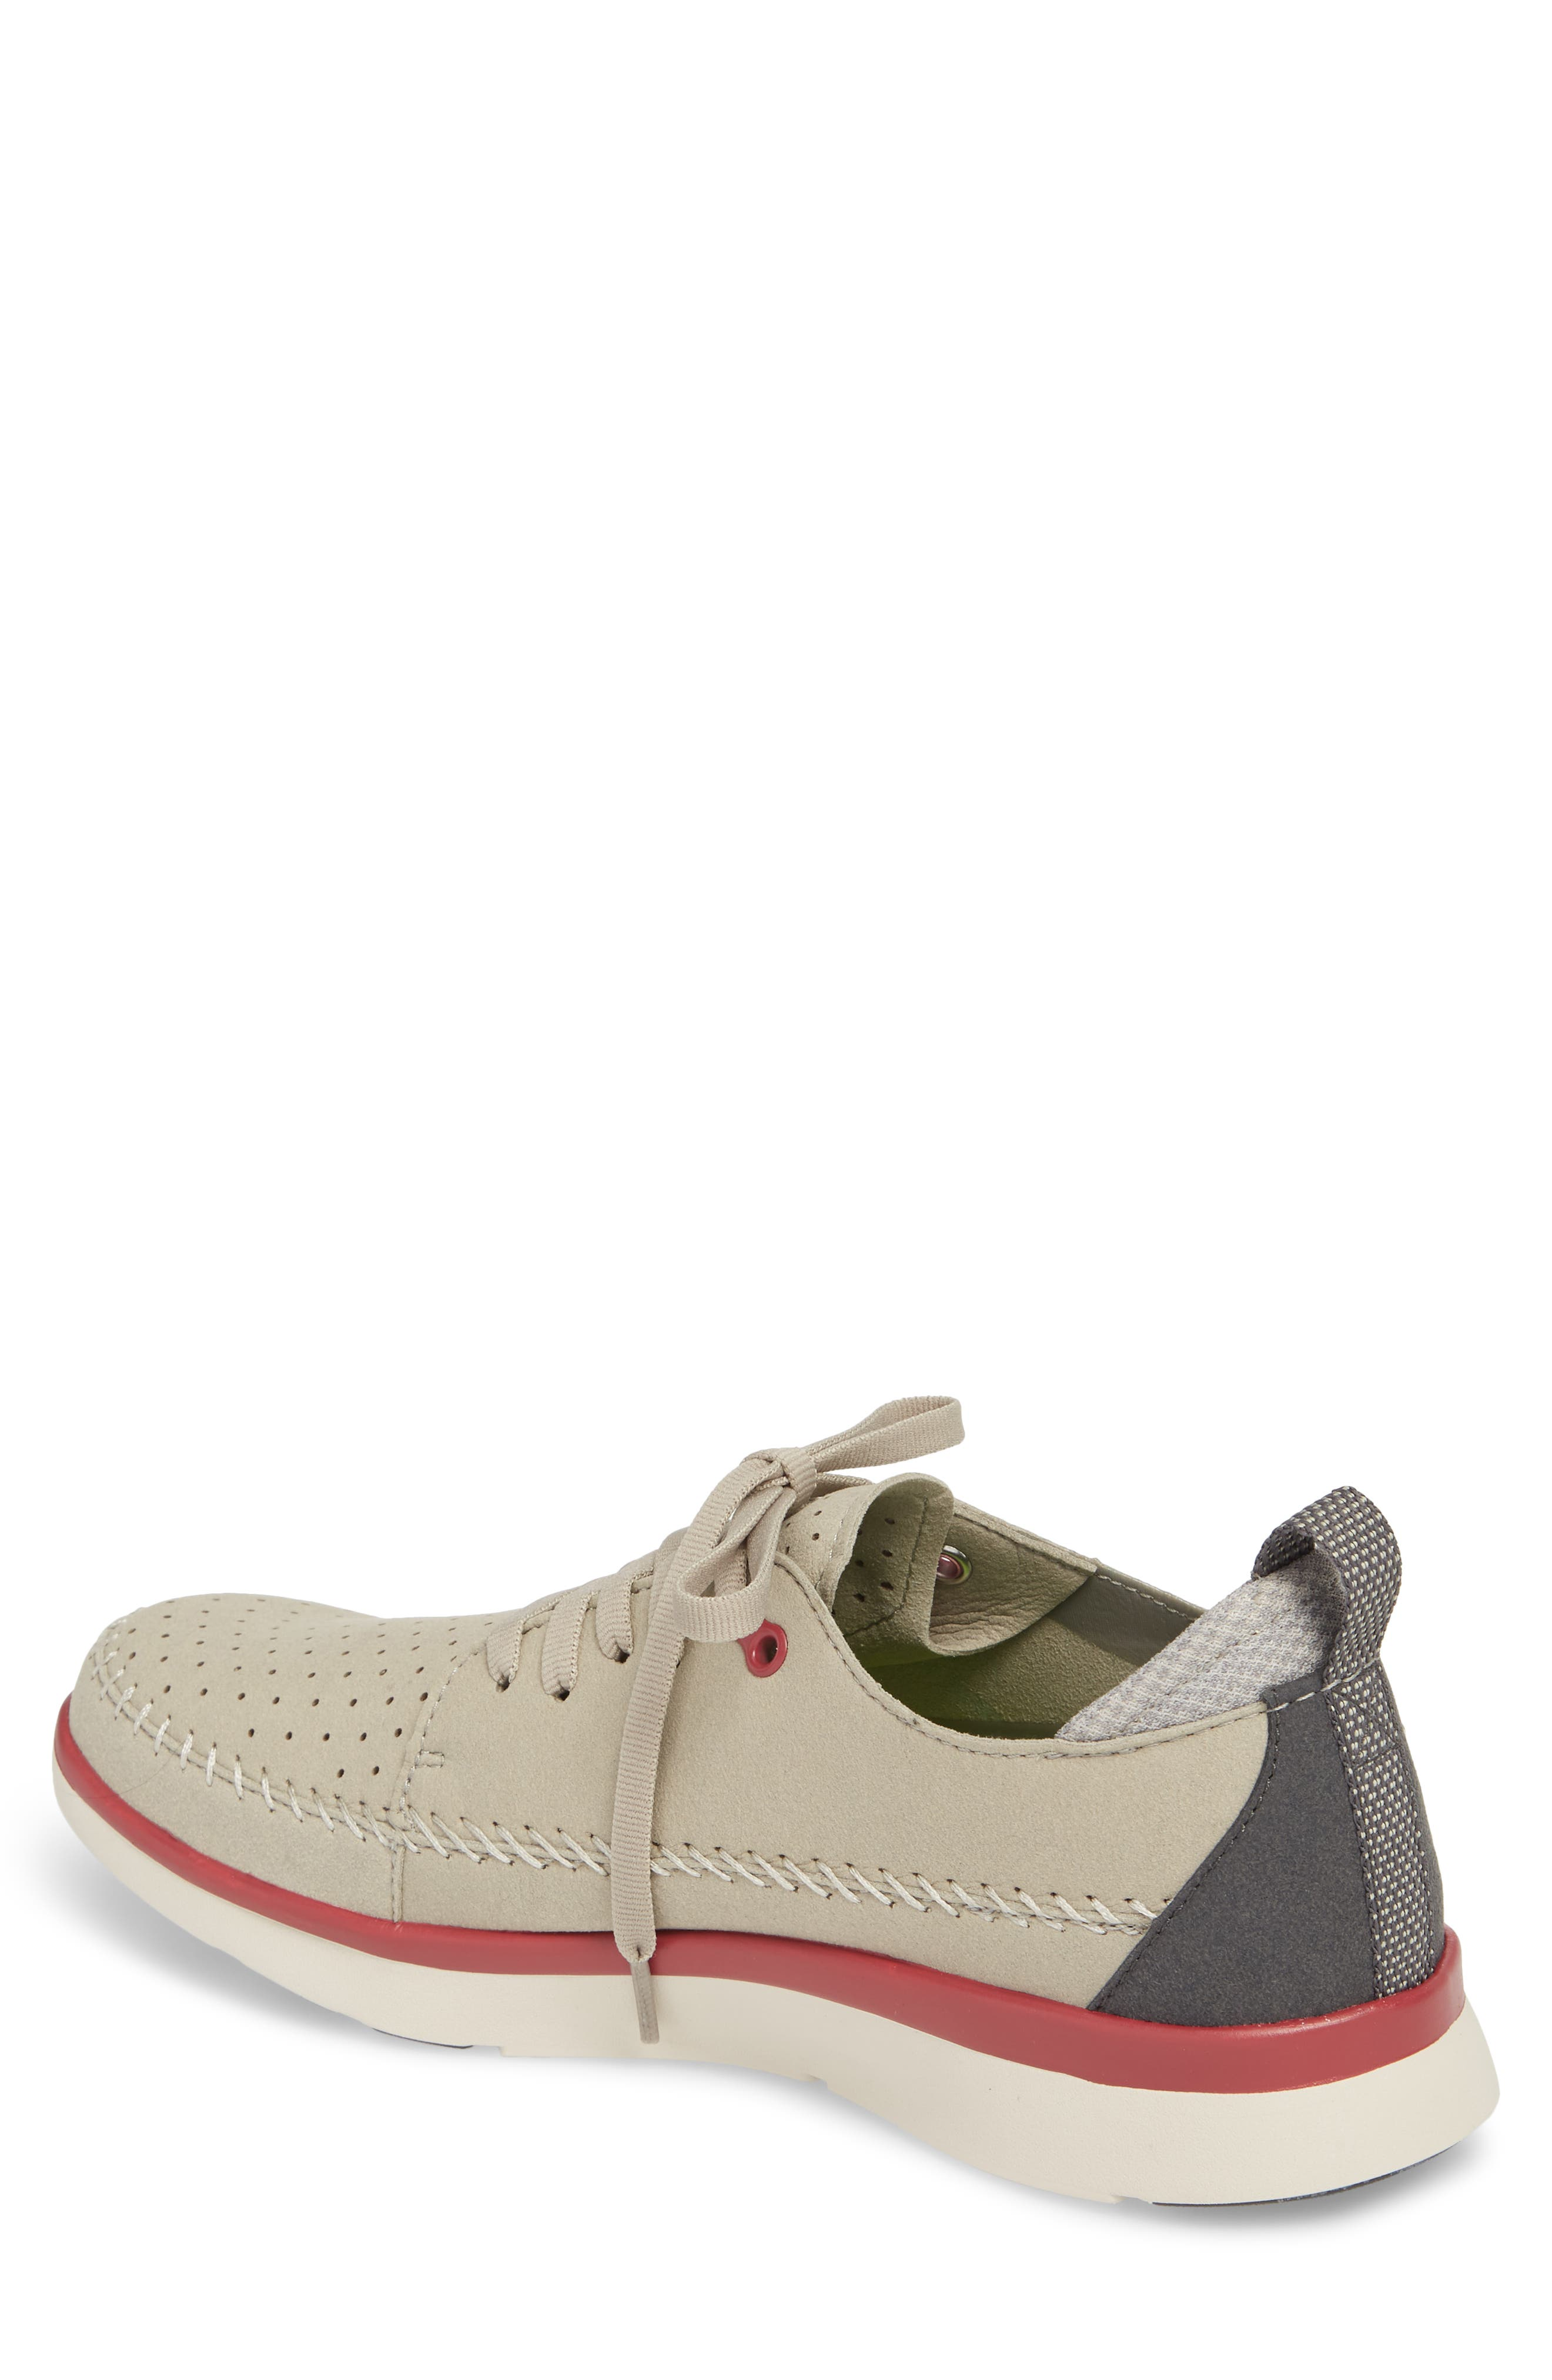 Worldwide Crane Perforated Sneaker,                             Alternate thumbnail 2, color,                             Grey